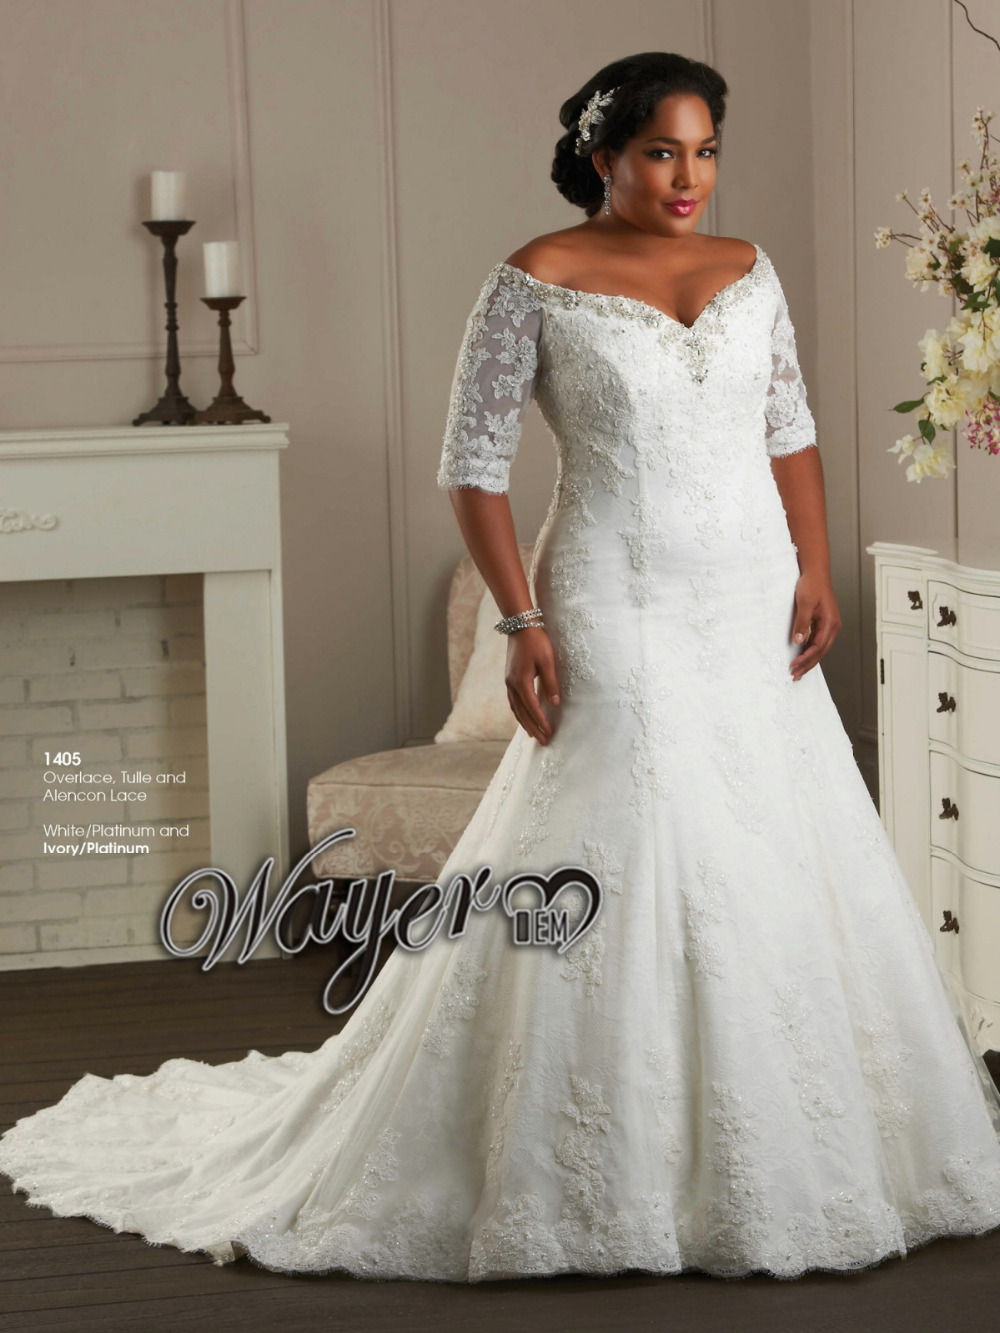 Aliexpresscom buy 2015 off the shoulder a line beaded for Off white plus size wedding dresses